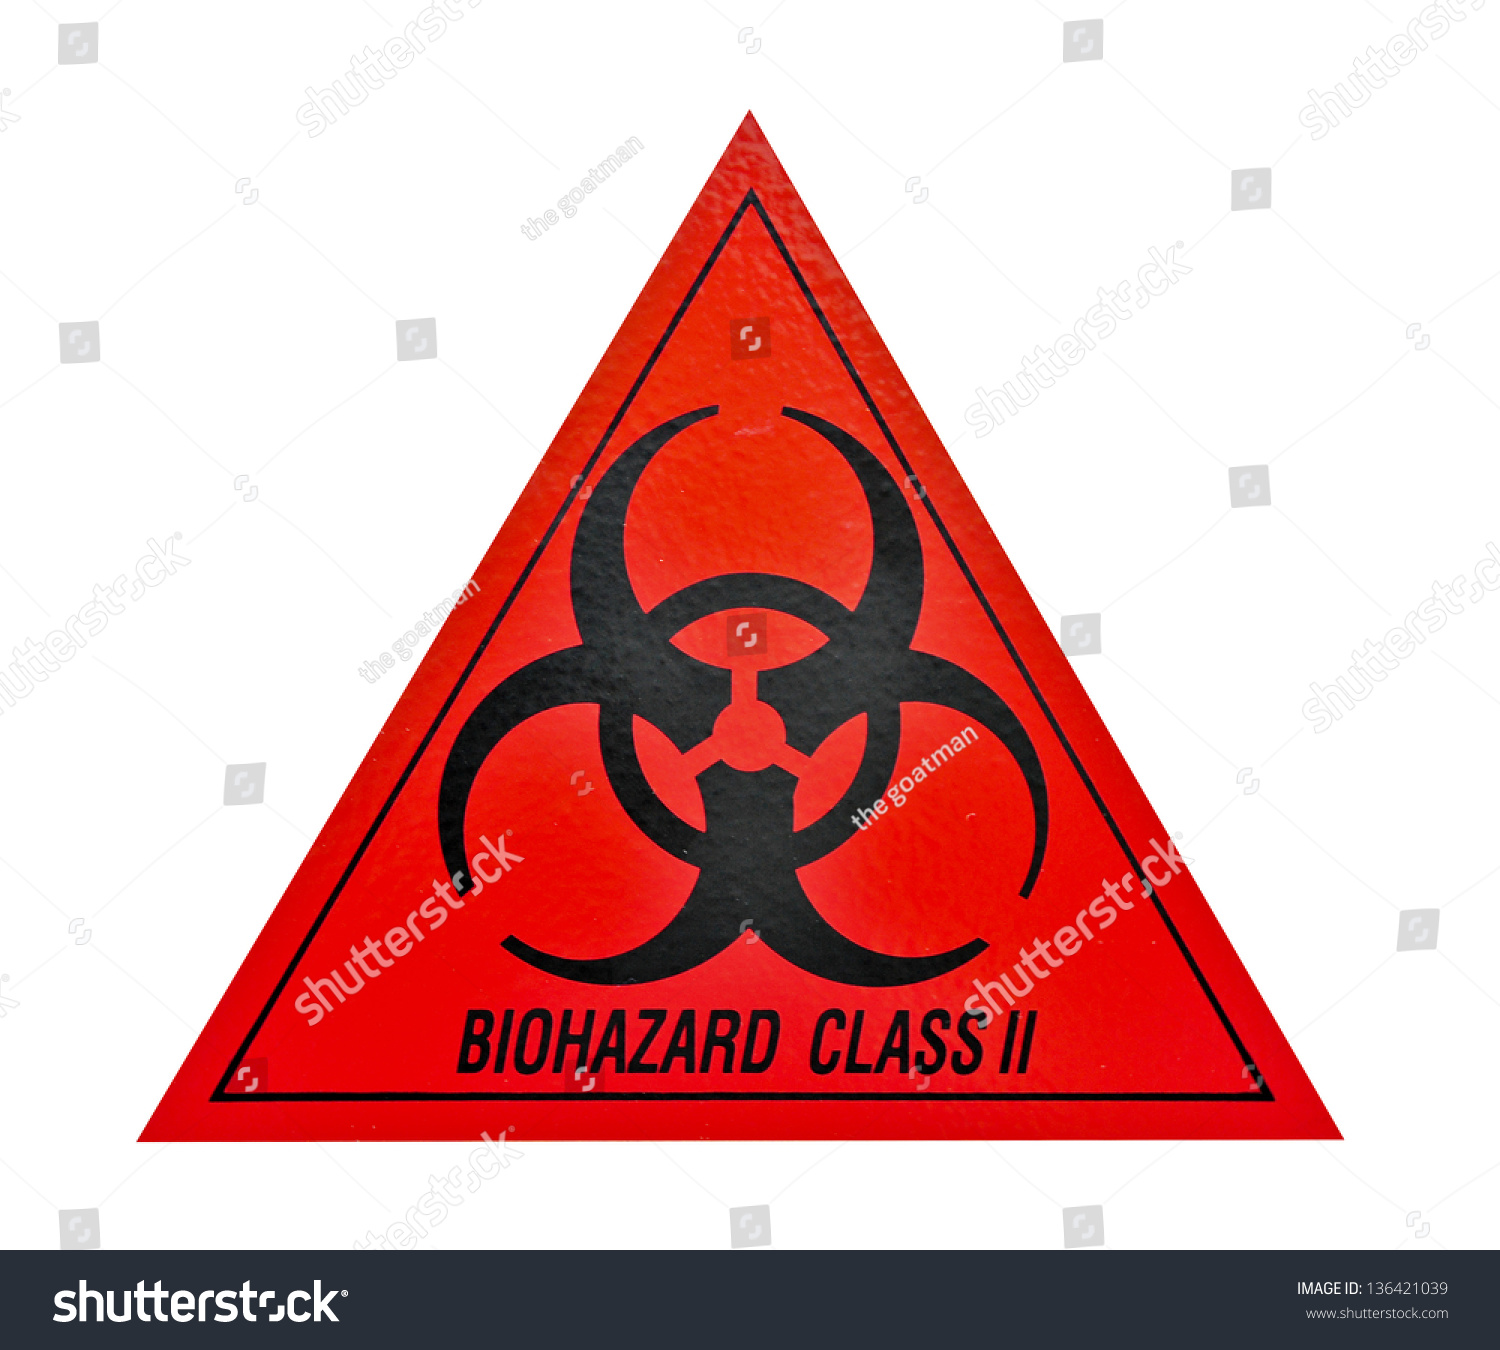 Biohazard Class Ii Symbol Sign Biological Stock Photo Edit Now